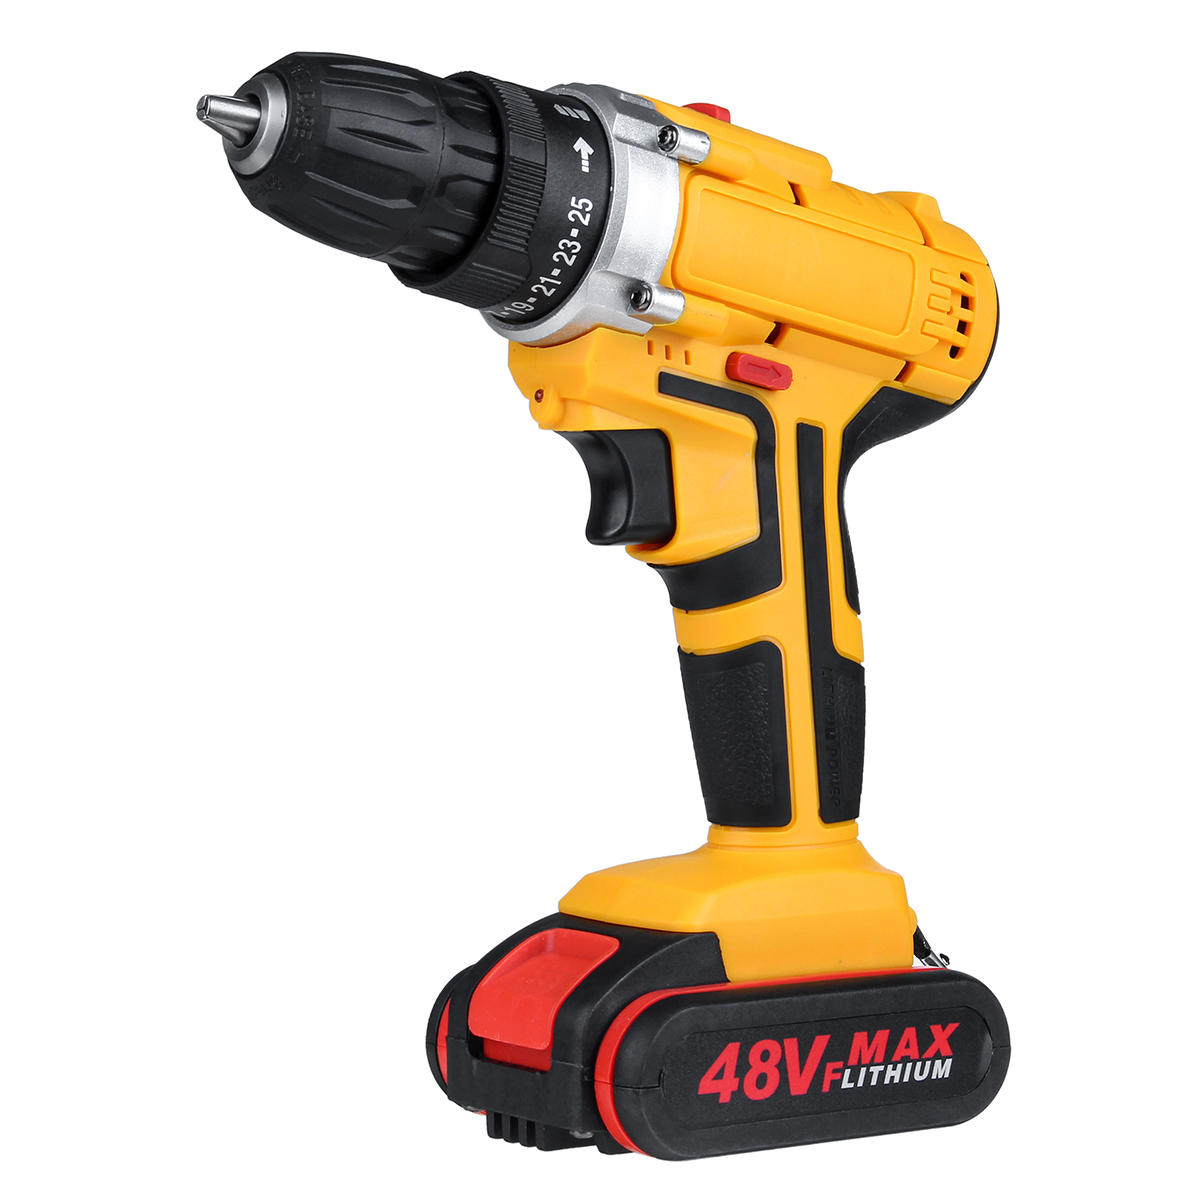 48V 1300mAh Cordless Electric Drill 25+3 Gear Electric Screw Driver Drill With 1 Or 2 Battery